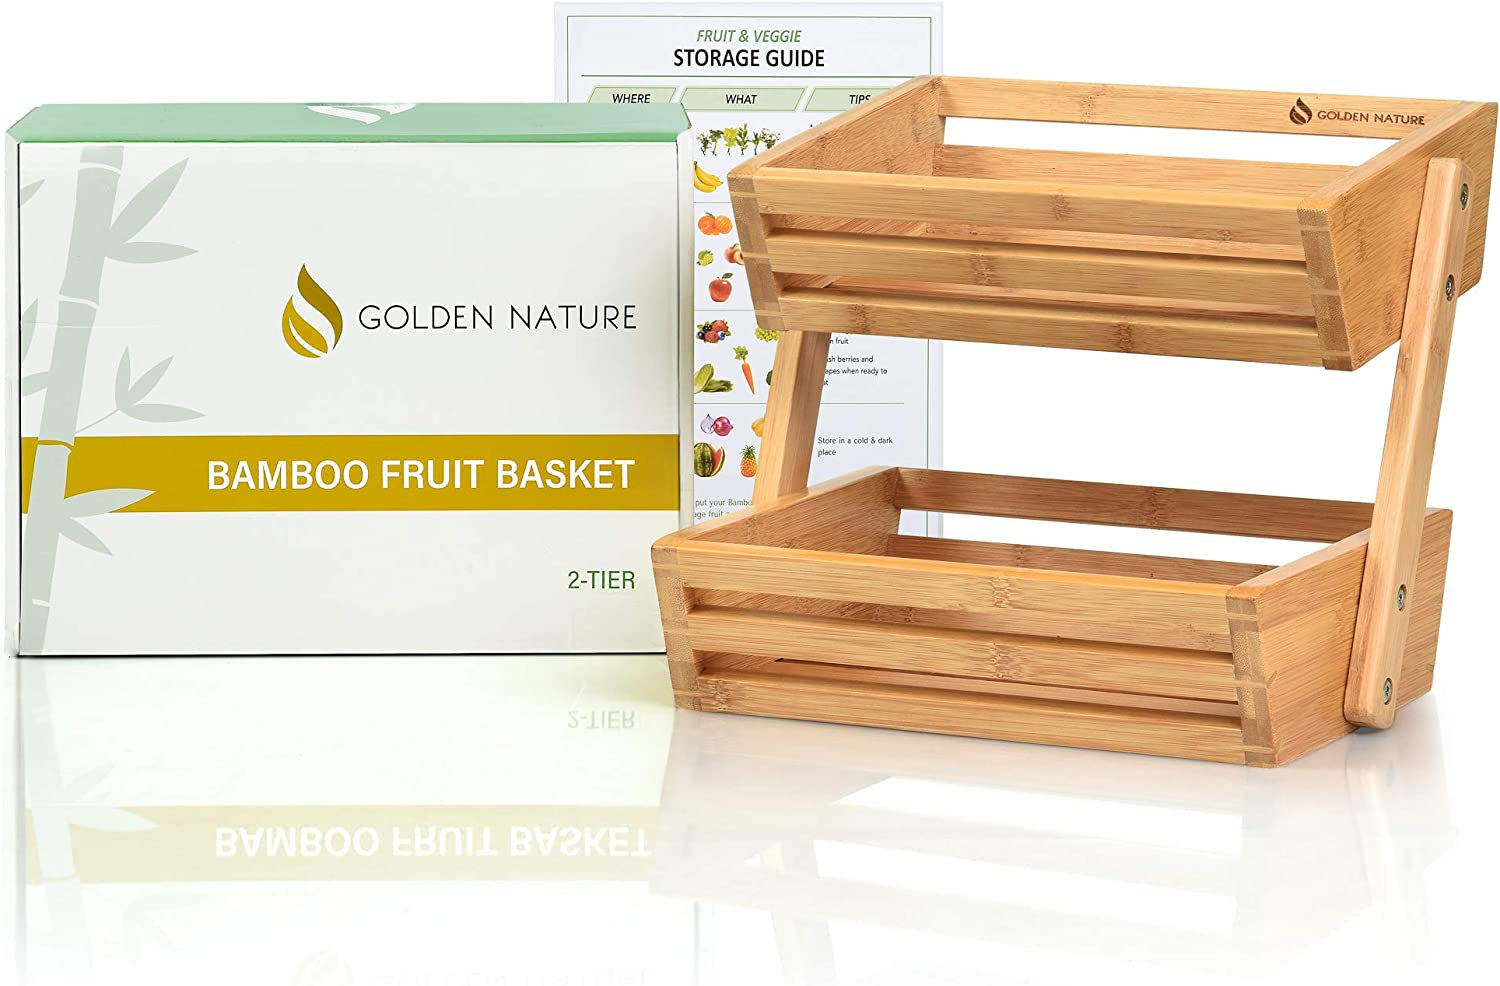 2-Tier Bamboo Fruit Basket, Fruit Stand for Kitchen Countertop, Vegetable Produce Bread Storage Holder, Fruit Not Included